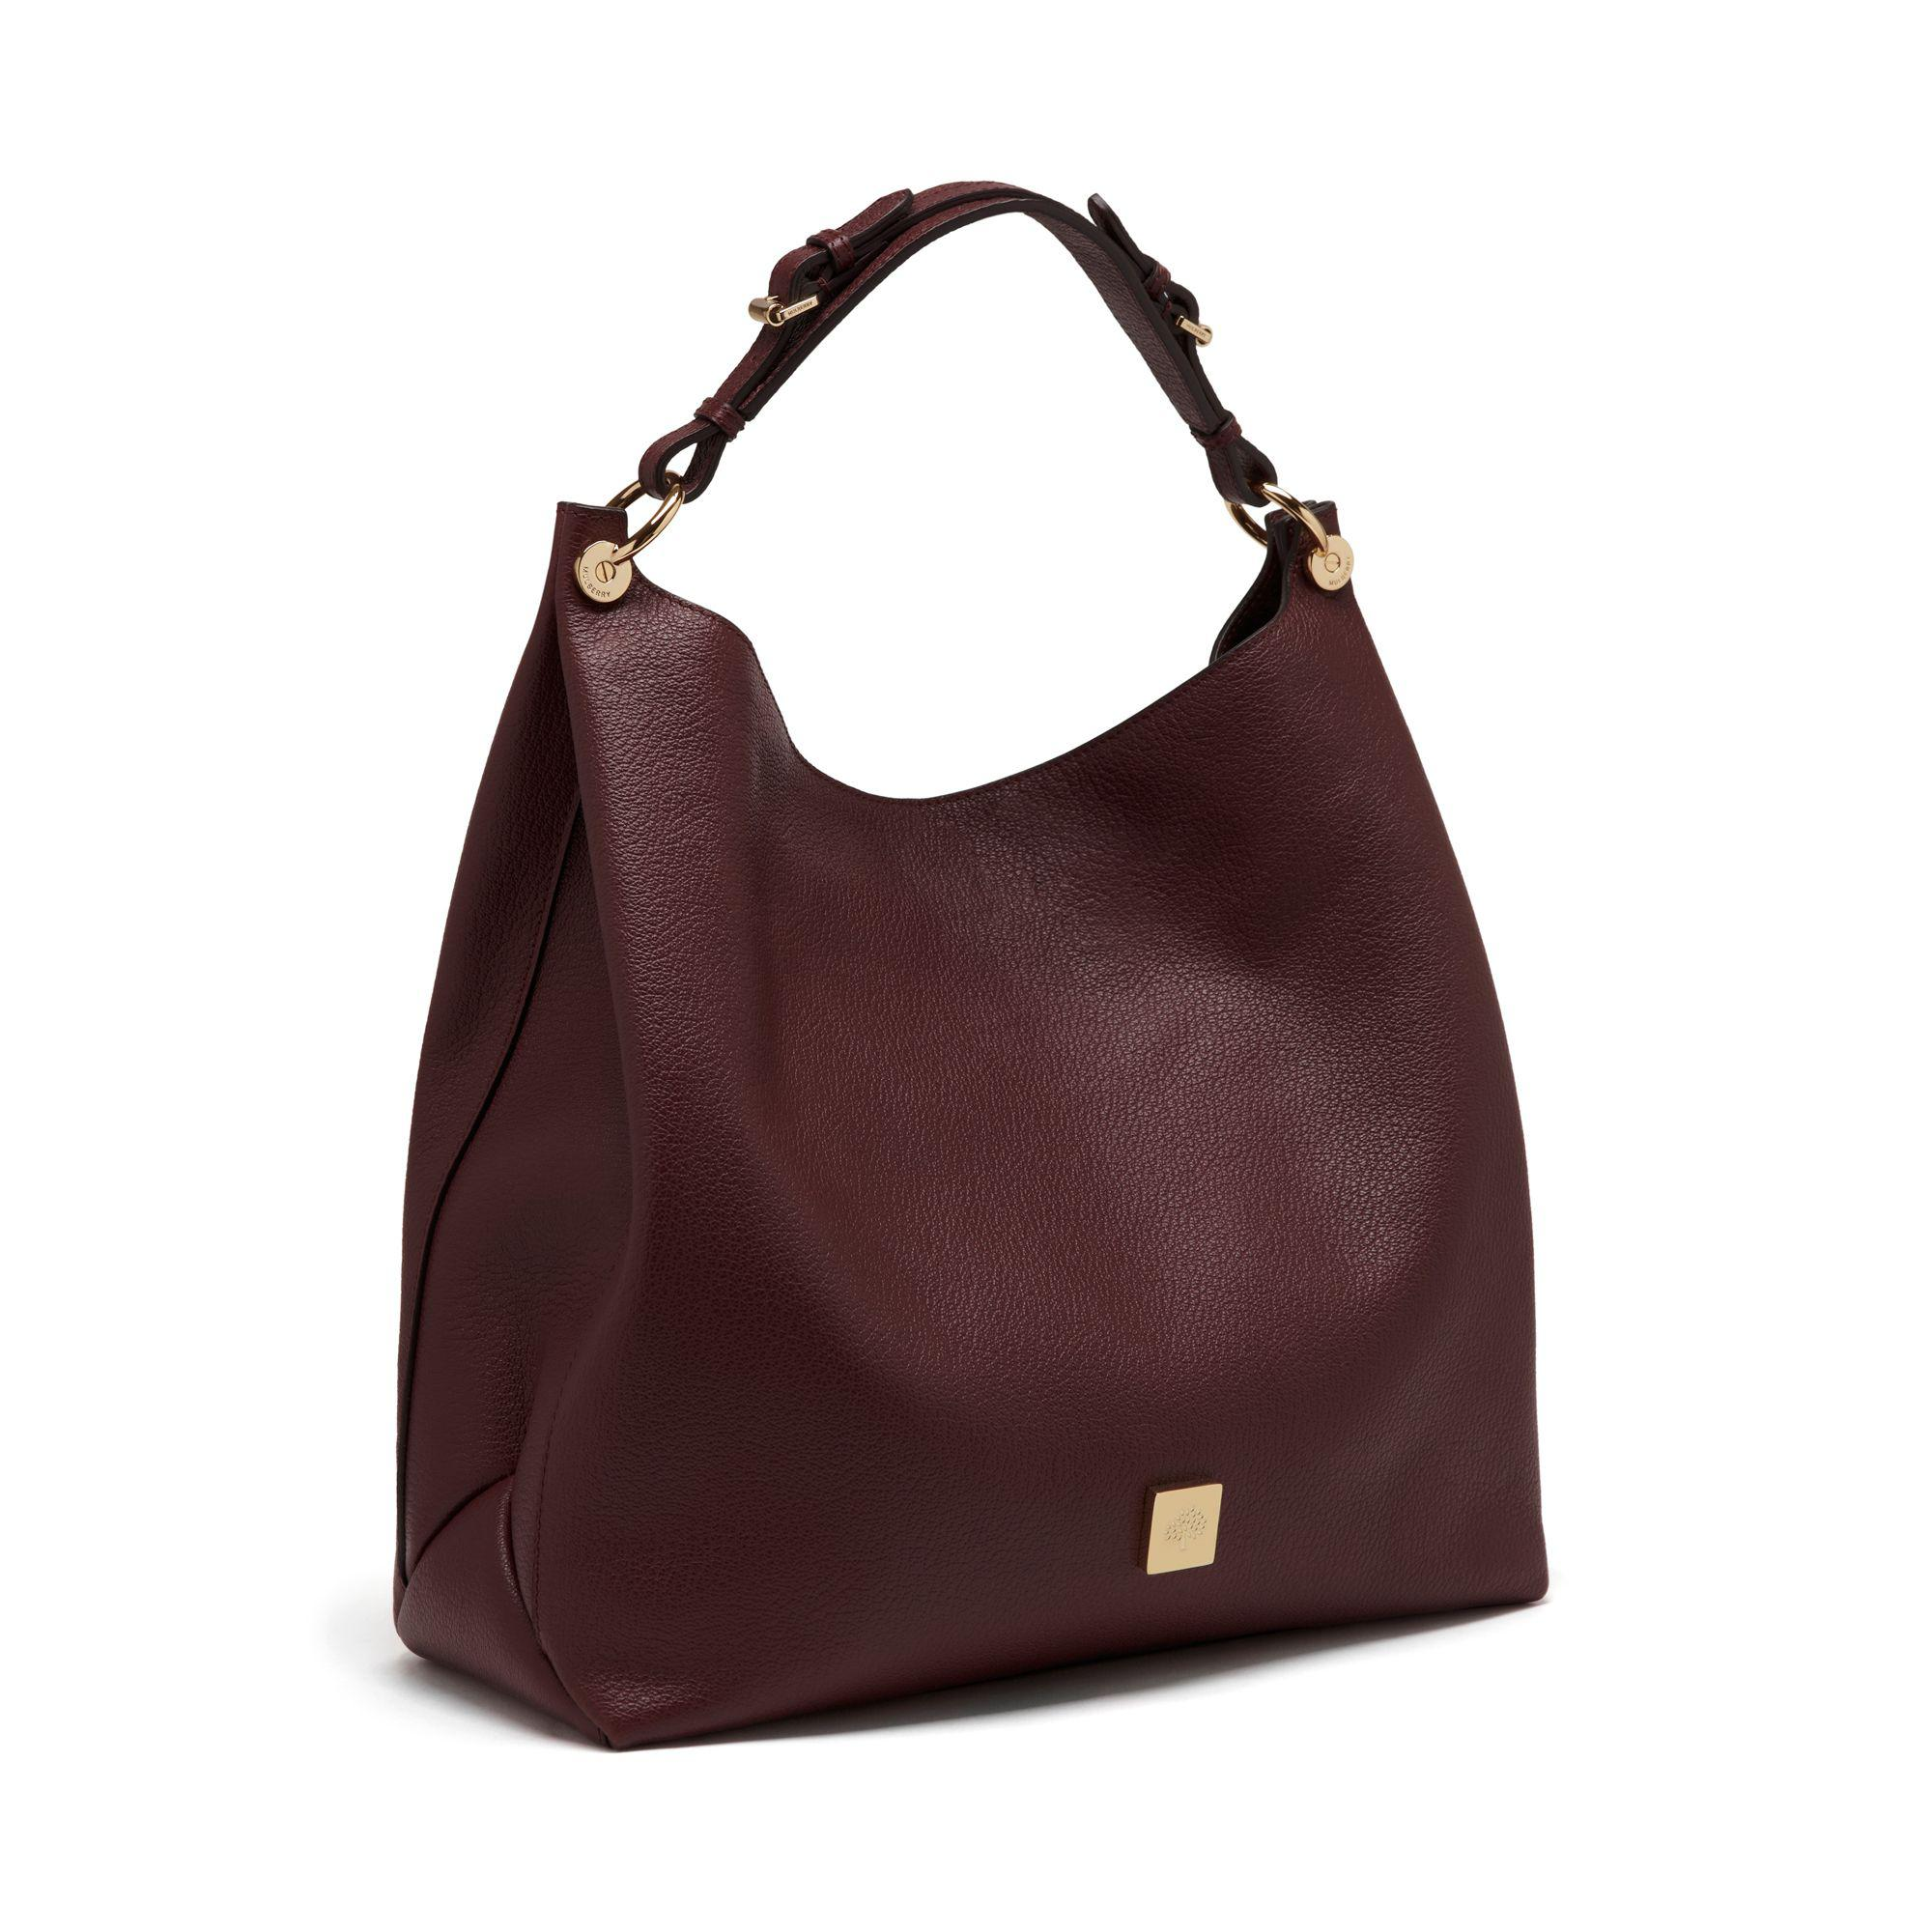 the best online here pre order Freya Leather Bag